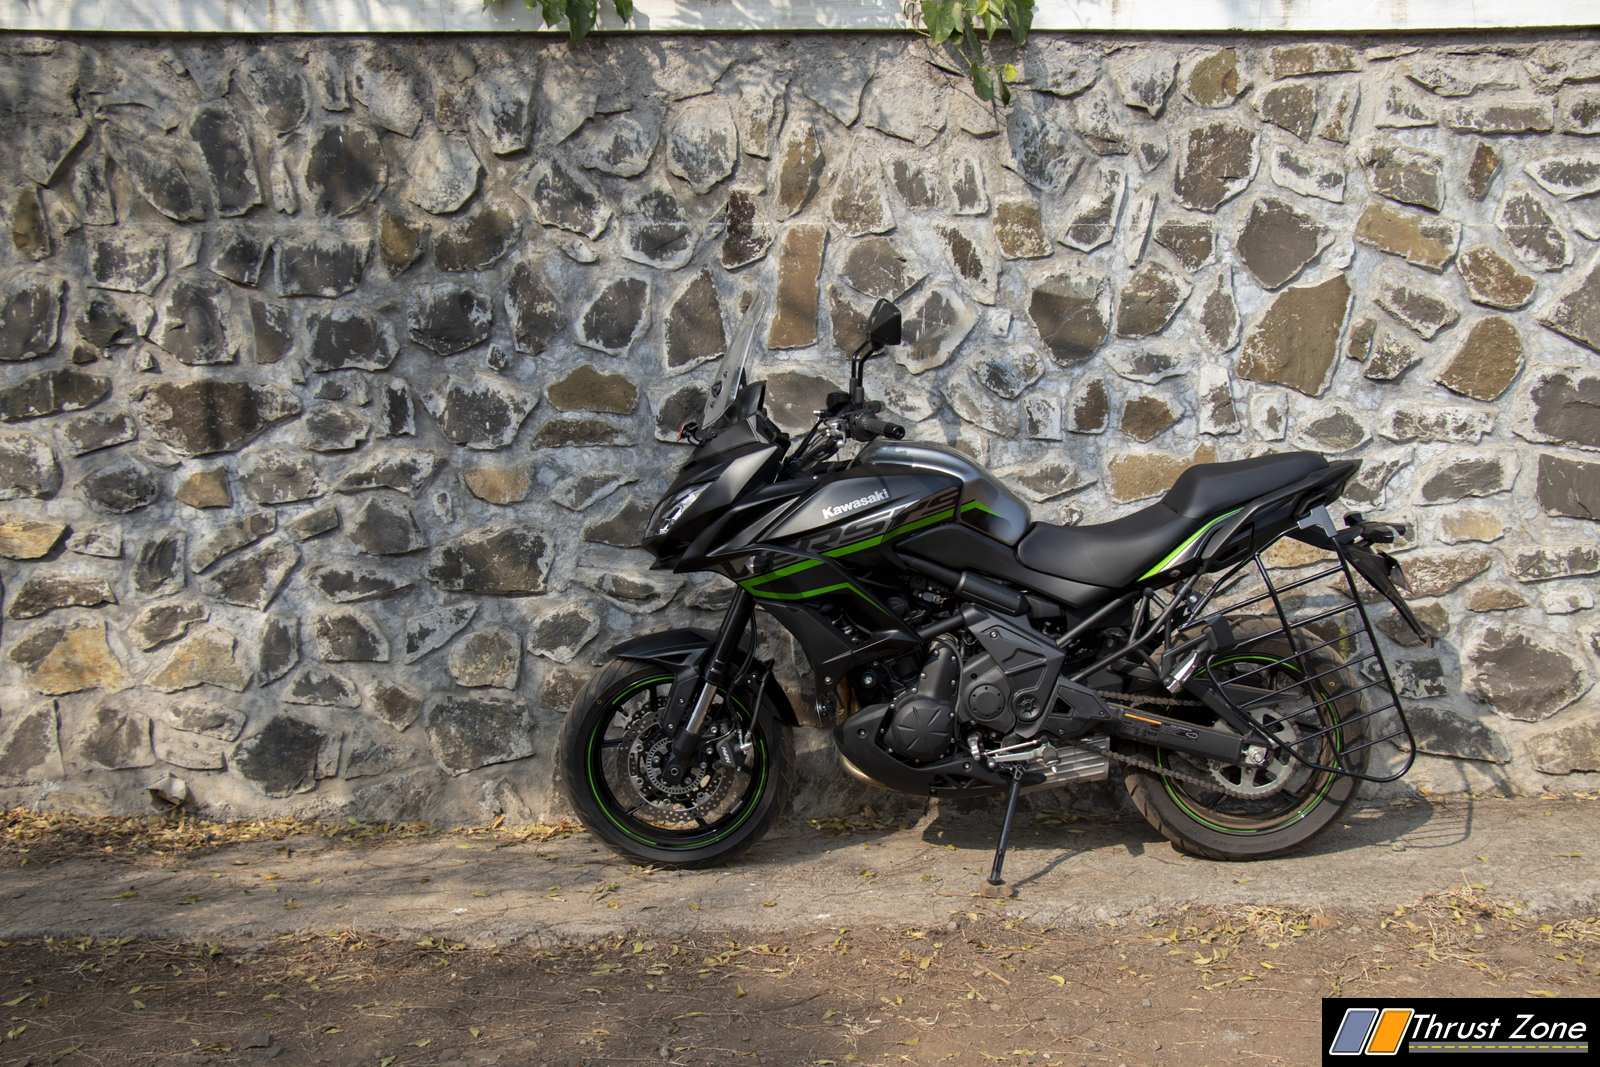 https://www.thrustzone.com/wp-content/uploads/2018/12/2019-Kawasaki-Versys-650-India-Review-12.jpg